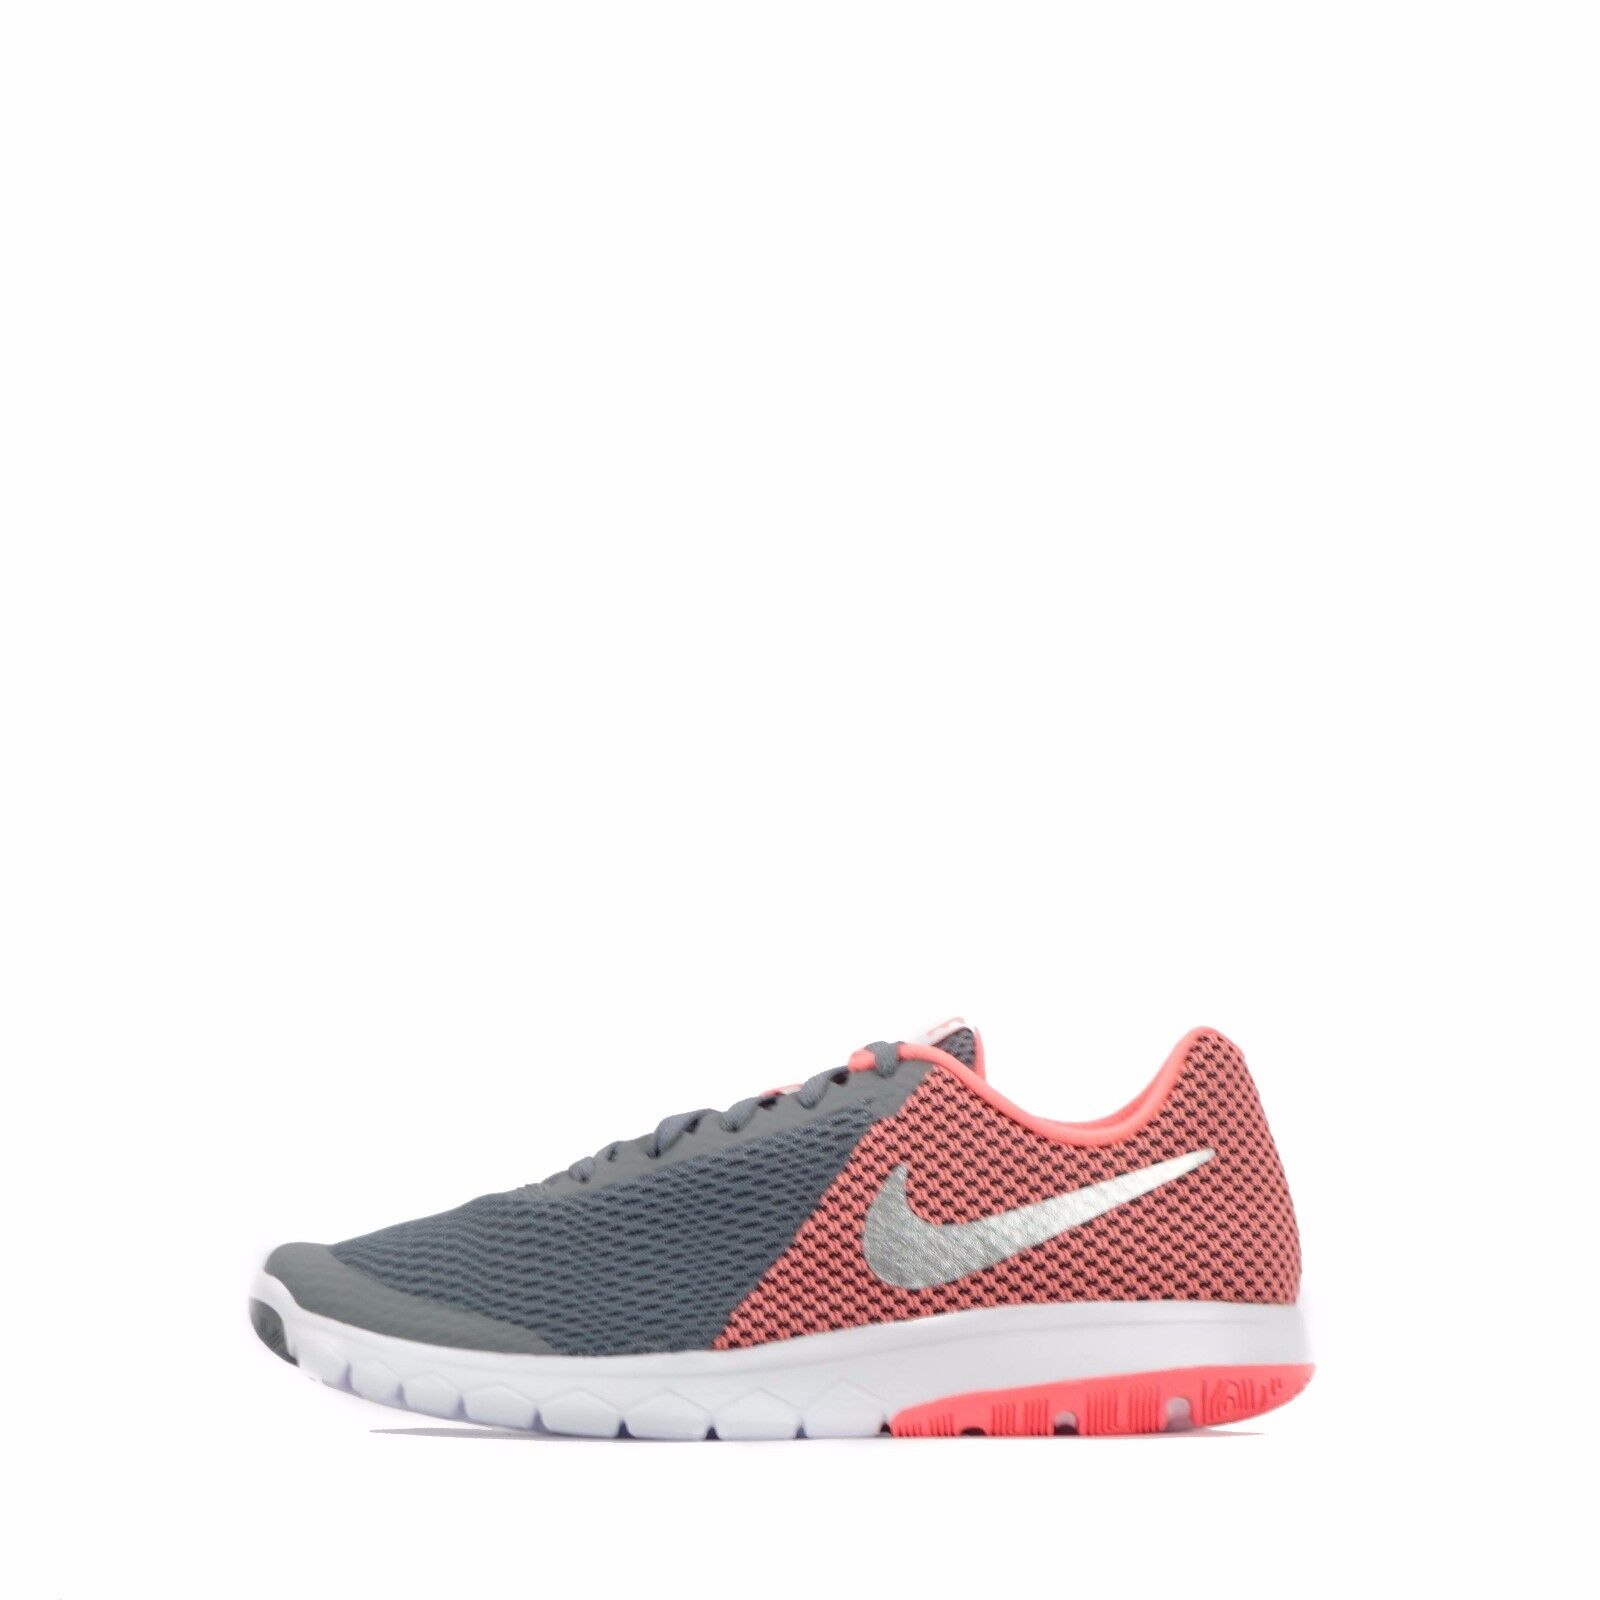 36465d843be48 Nike Flex Experience Experience Experience RN 6 Women s running Shoes Cool  Grey Silver 1889ce